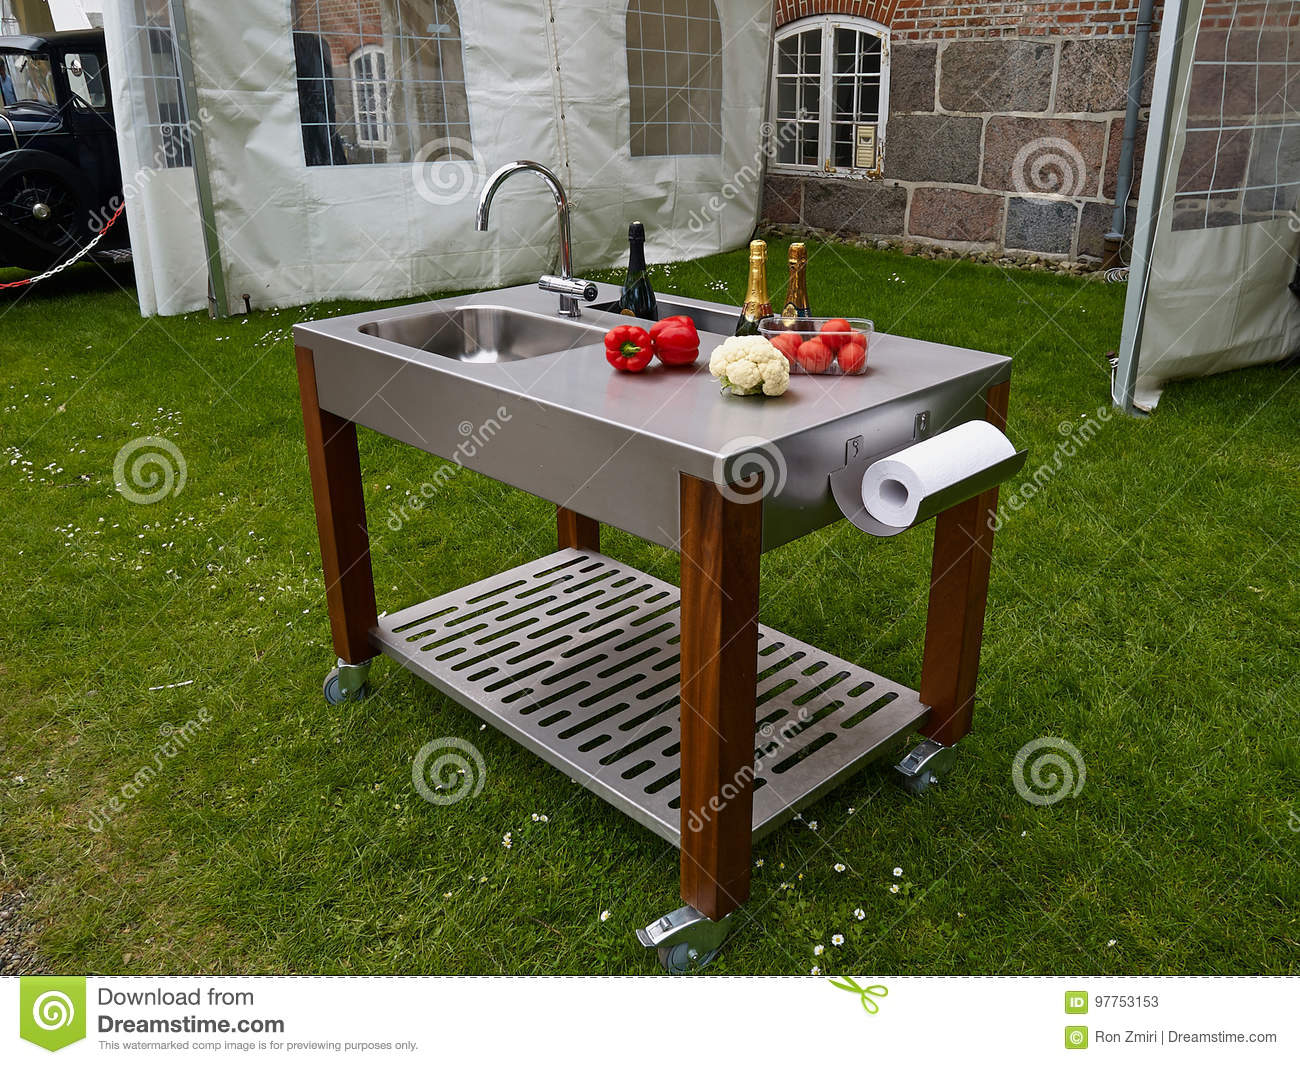 05714919b8 Modern trendy design outdoor garden kitchen on wheels made from metal and  wood